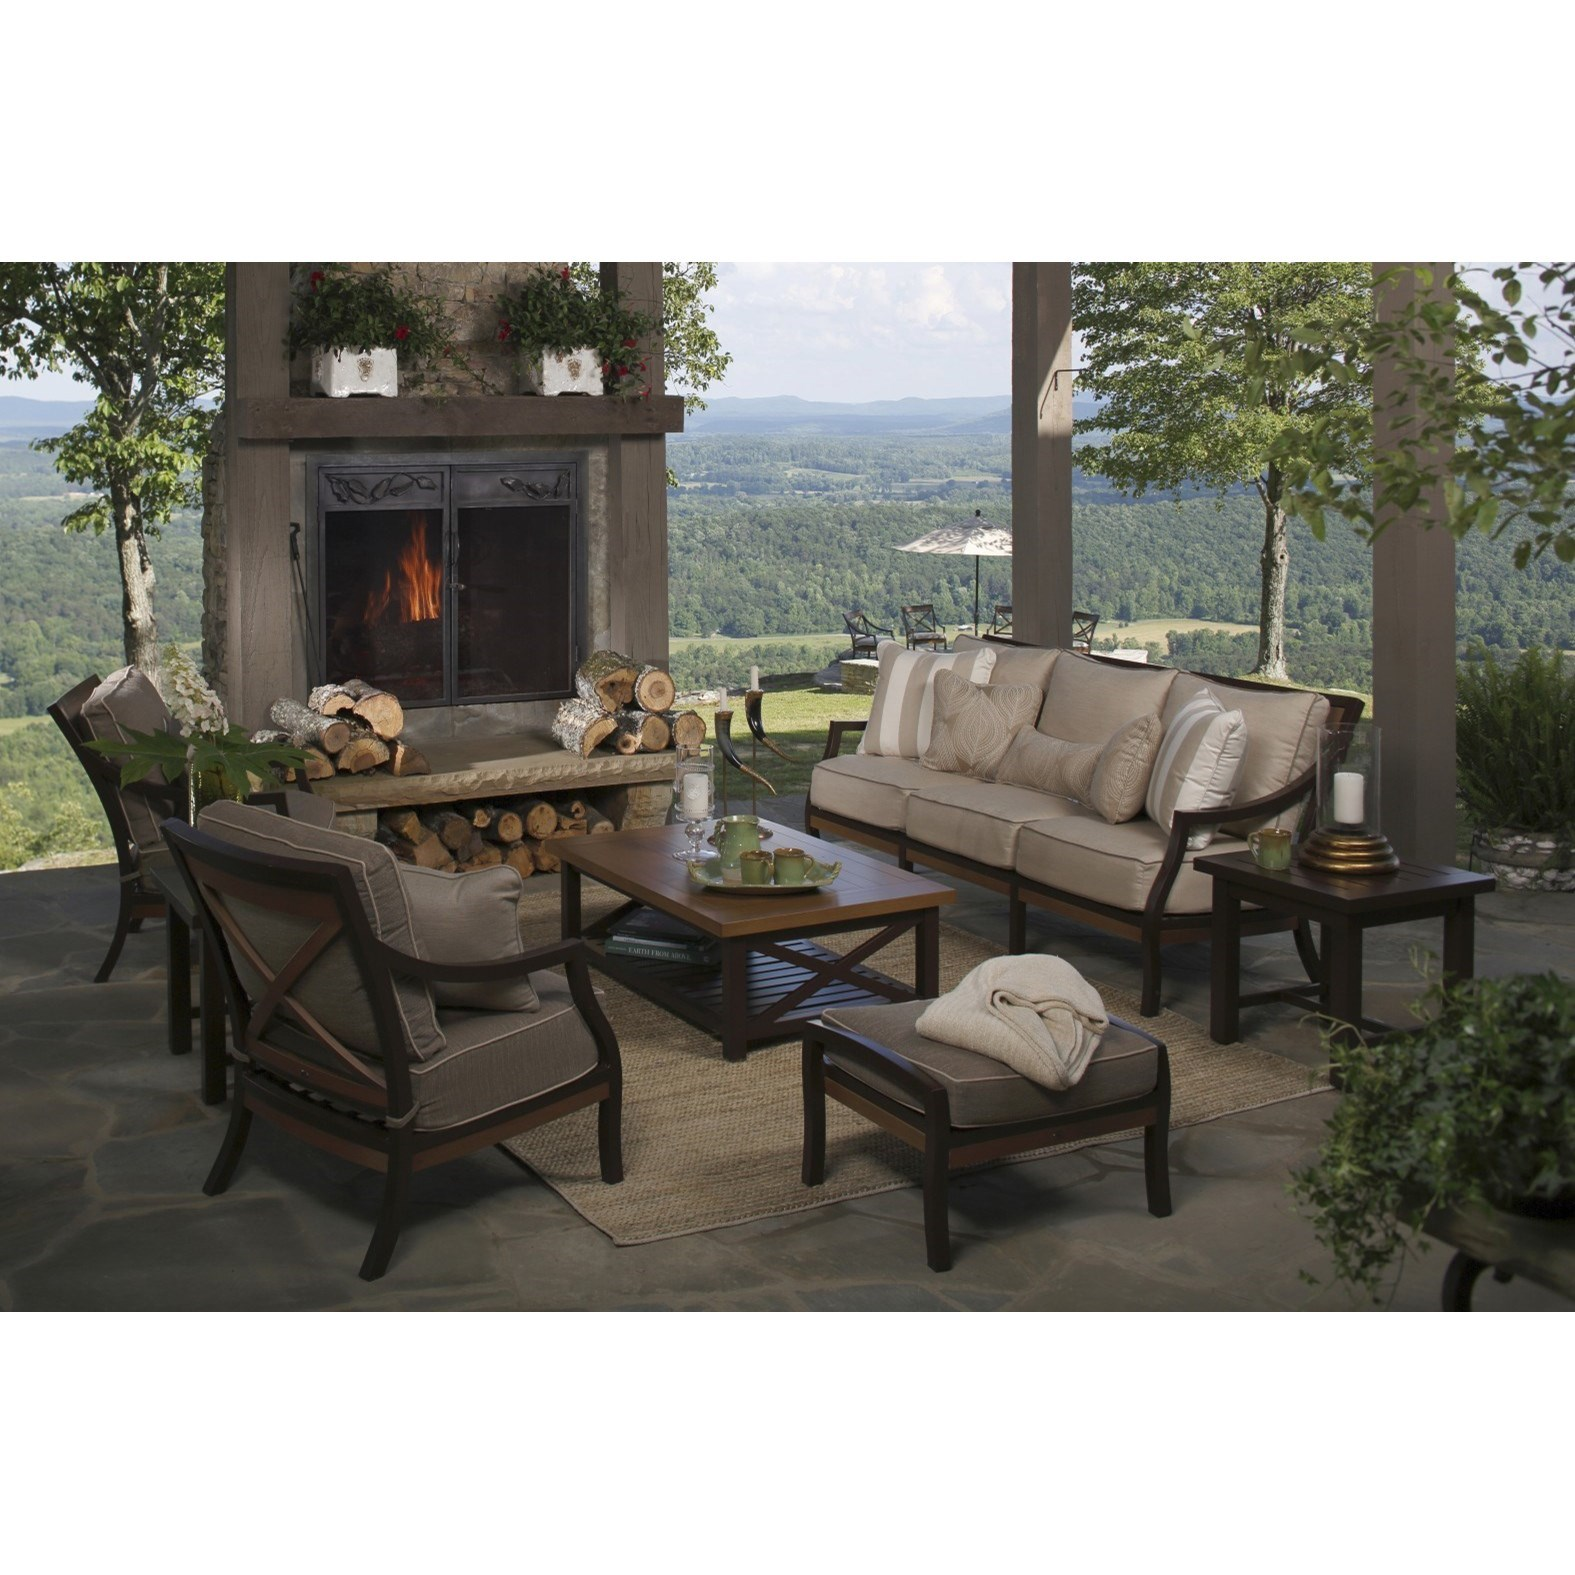 Belize Outdoor Conversation Set by Summer Classics at Malouf Furniture Co.